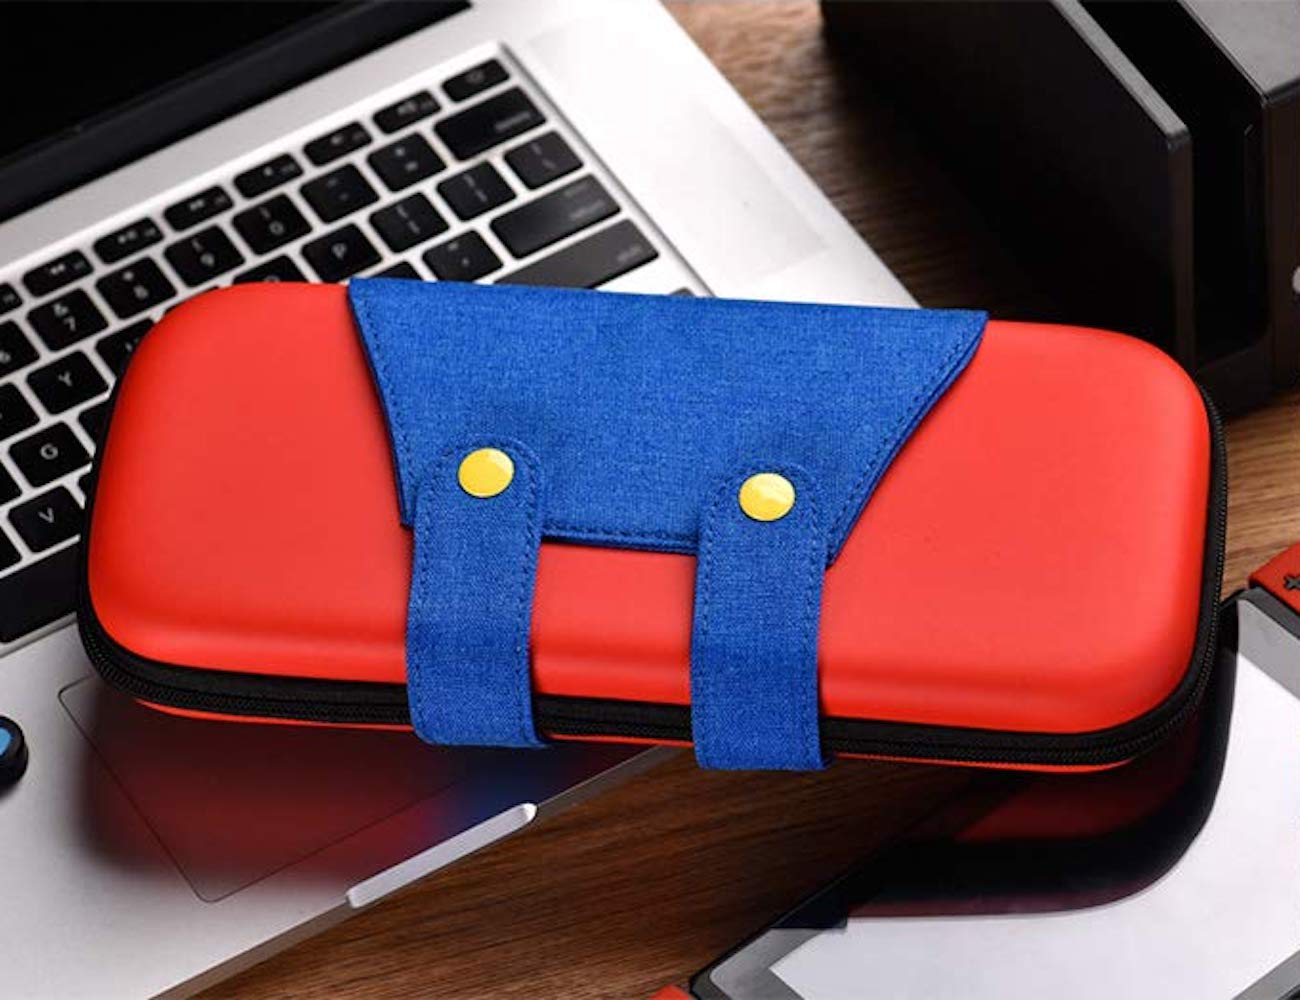 10 Must-have gaming accessories that will help you level up - Nintendo Switch Case 03